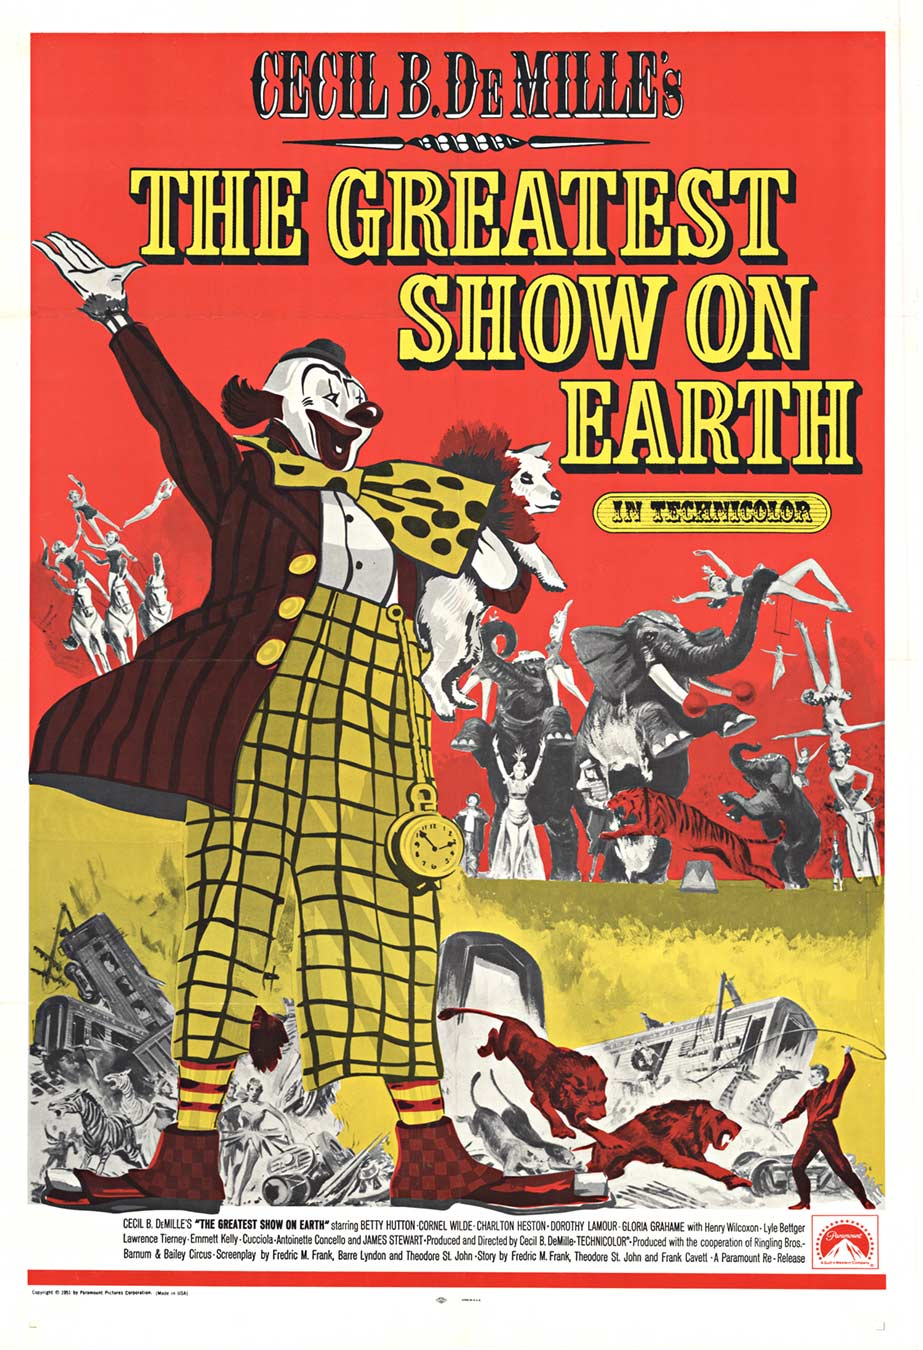 DeMille's Greatest Show On Earth, Anonymous Artists